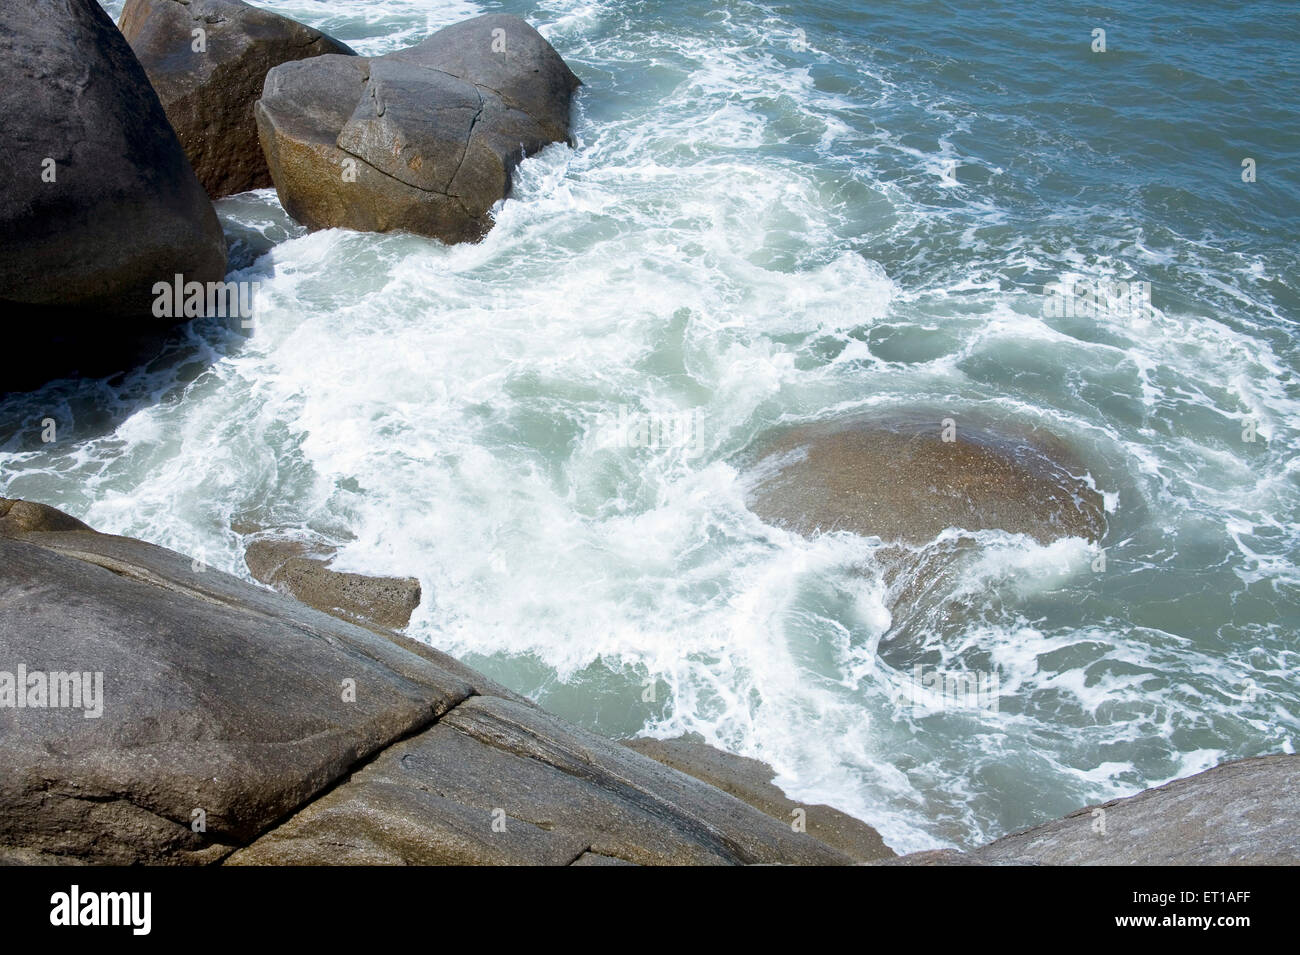 Sea water waves disturbance ; Agonda ; Goa ; India - Stock Image